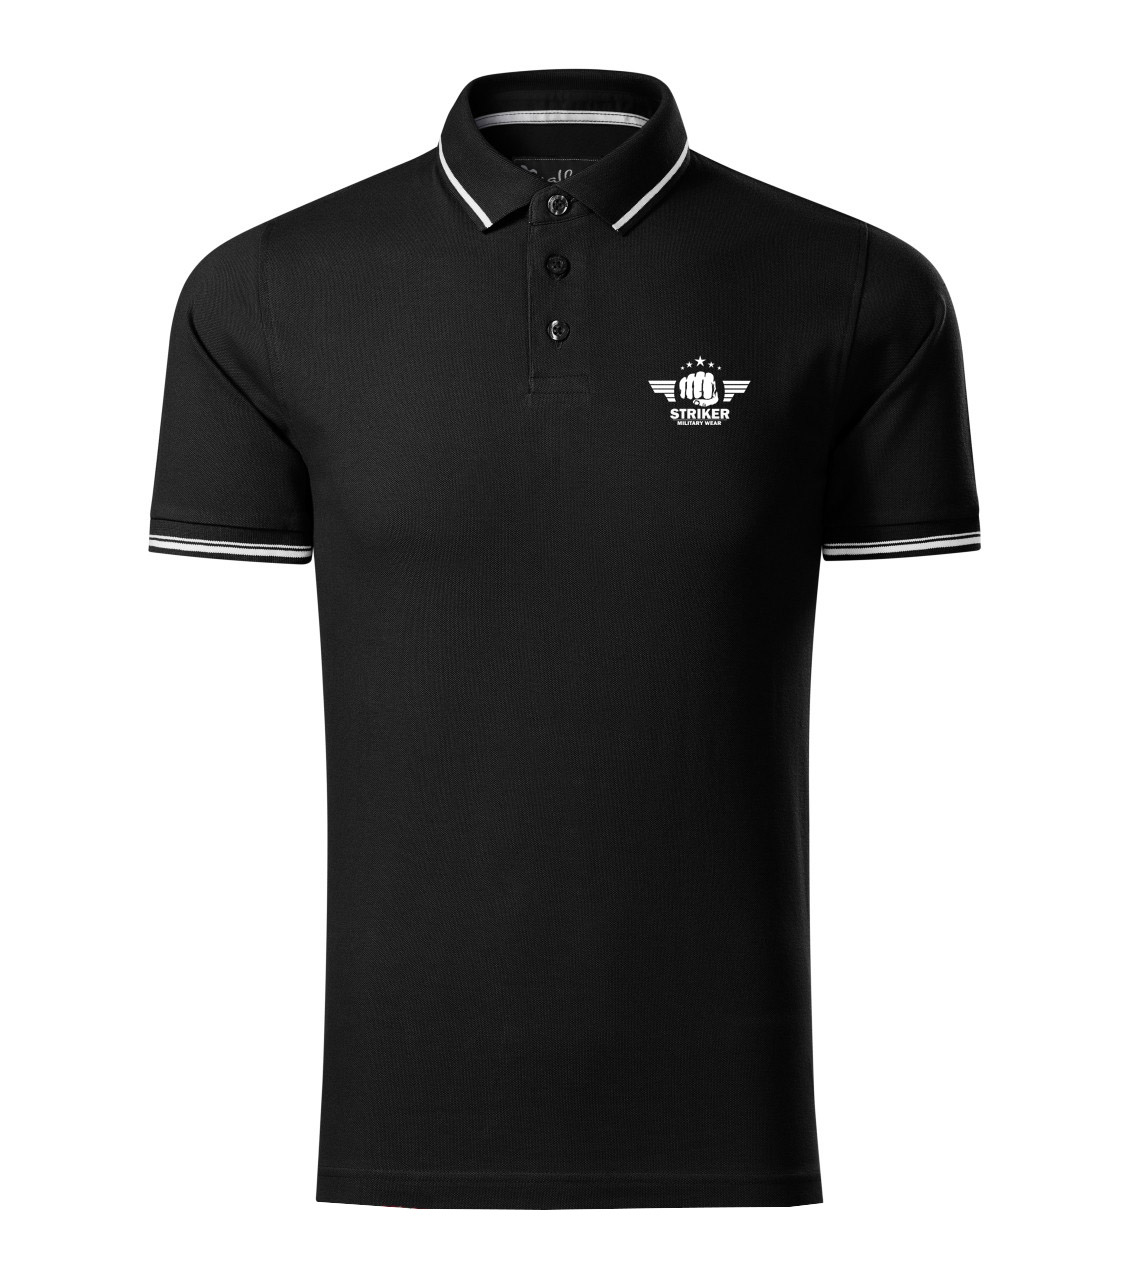 Polokošile STRIKER Military wear